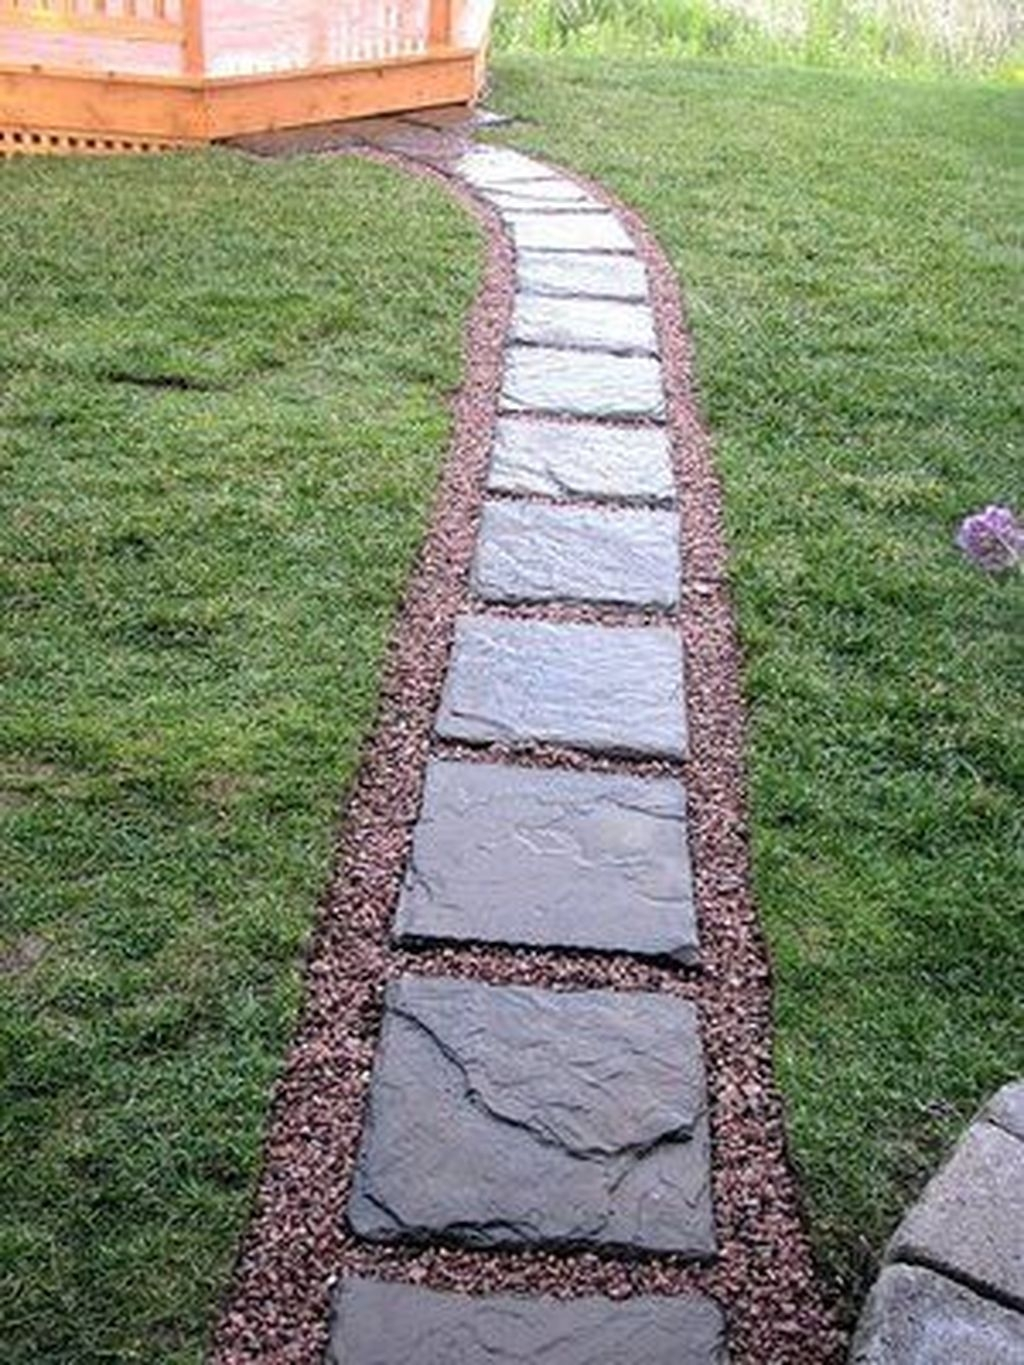 Inspiring Stepping Stone Pathway Decor Ideas For Your Garden11